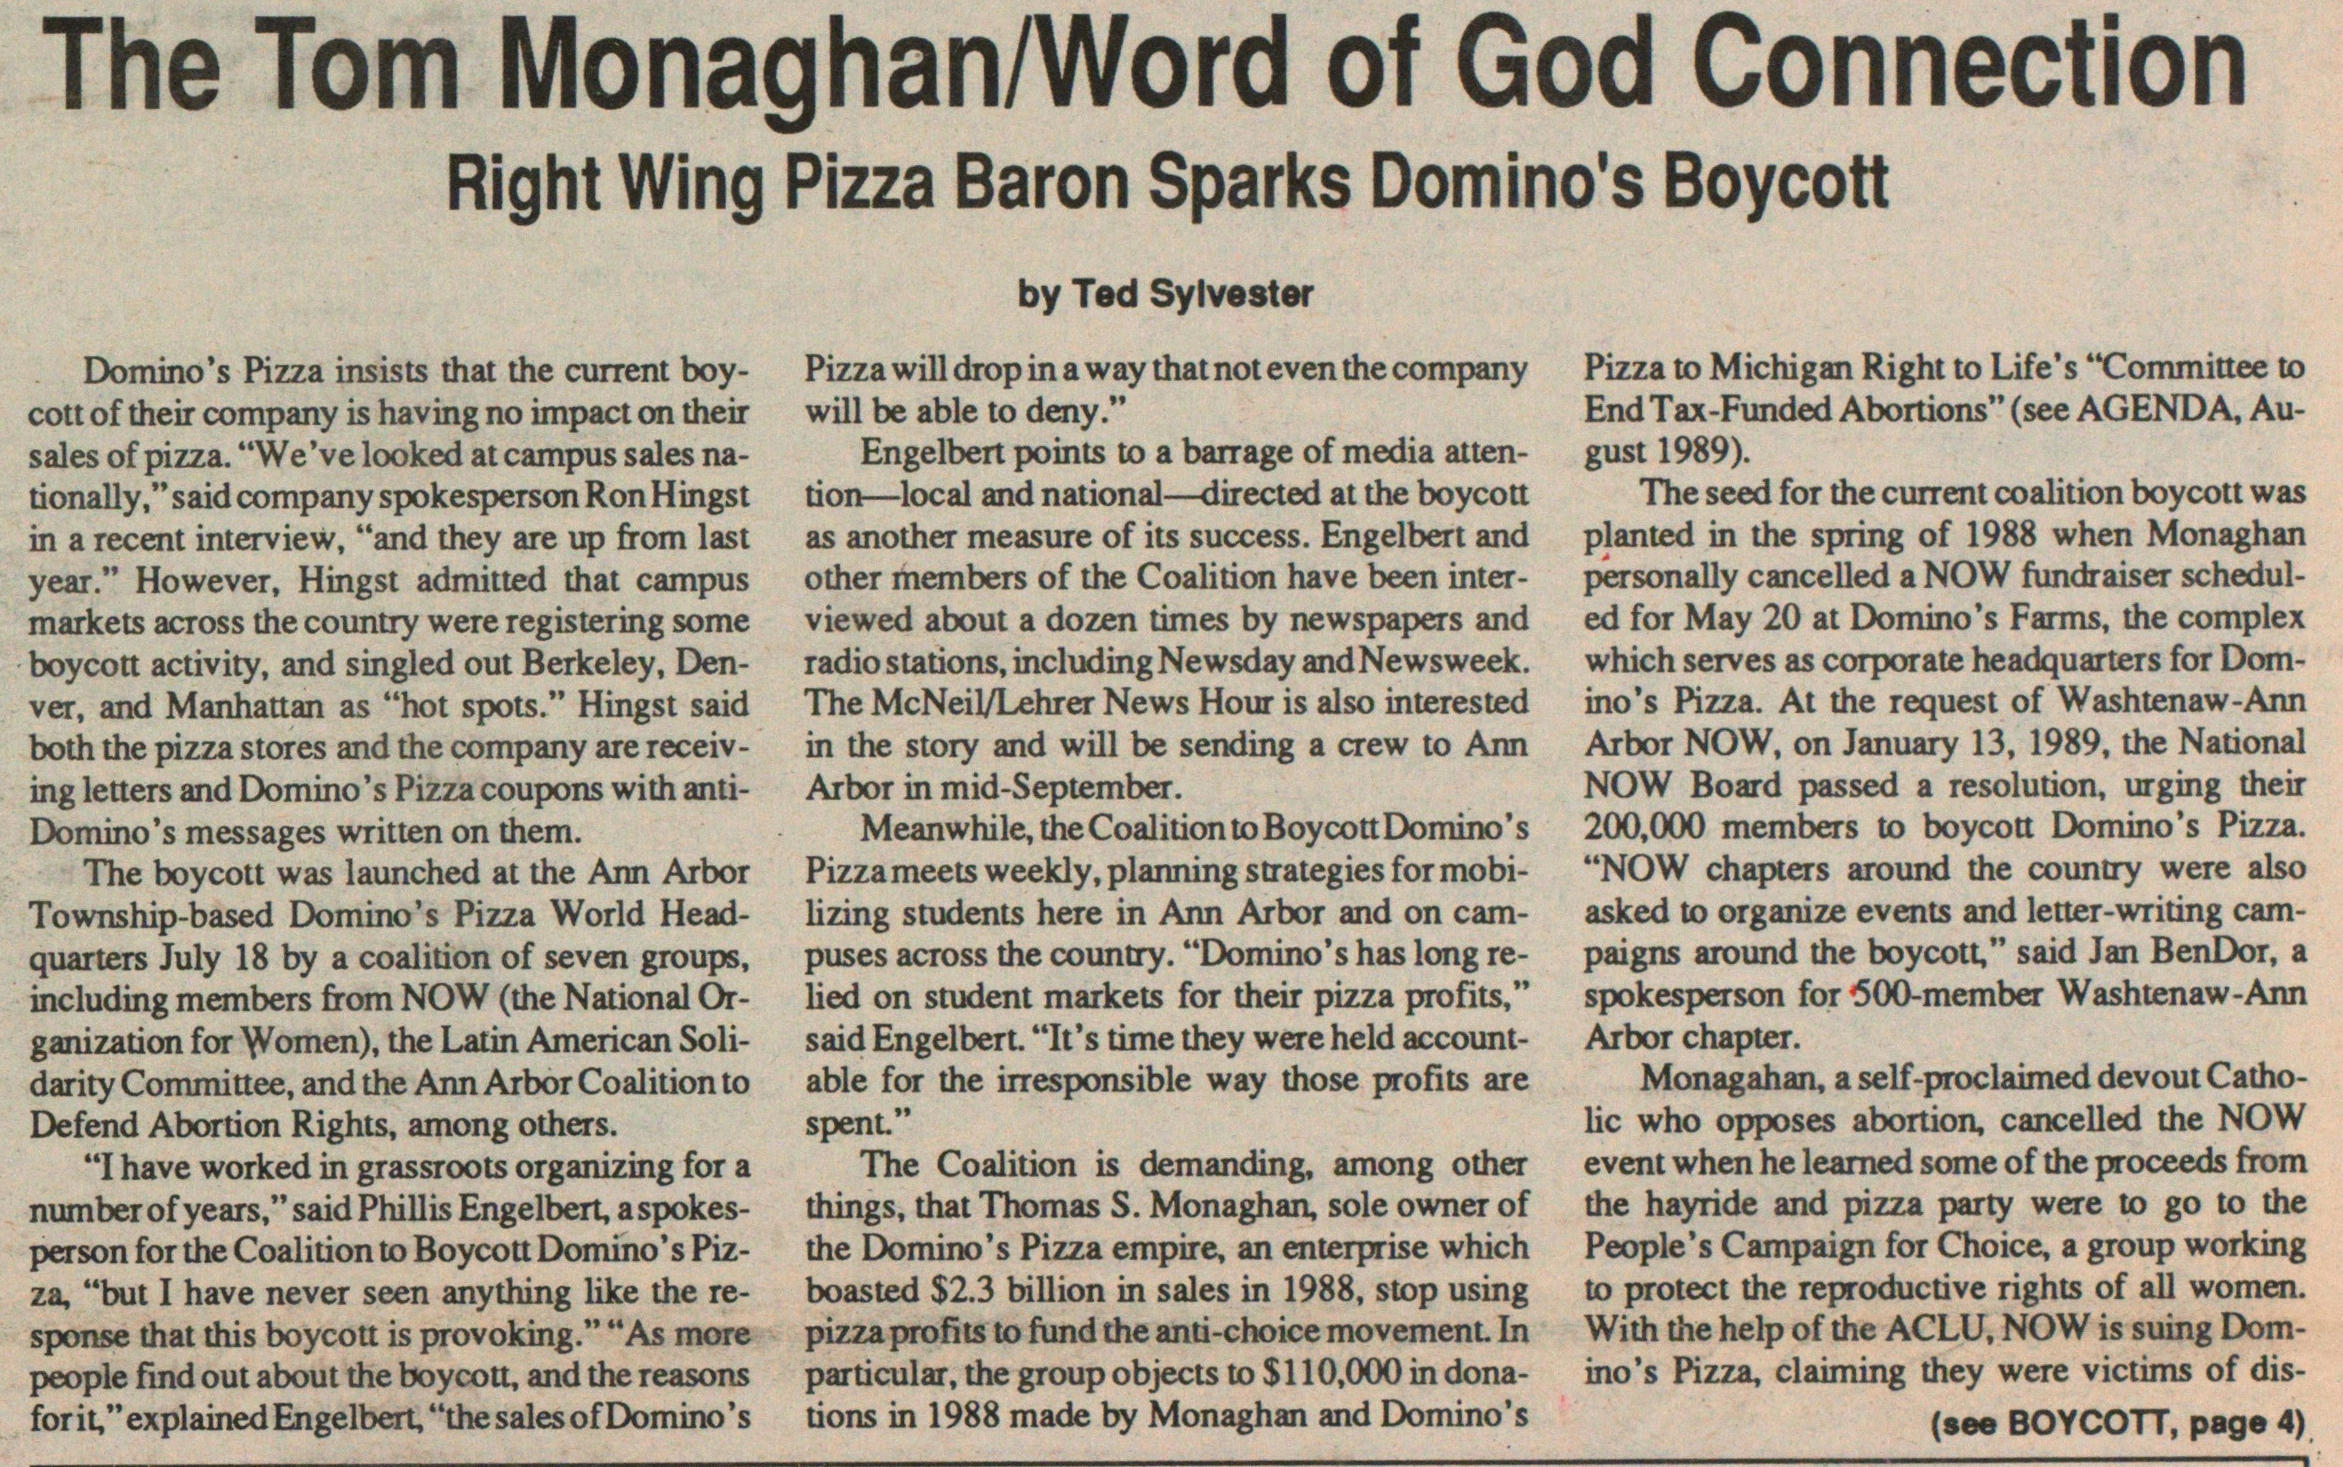 The Tom Monaghanword Of God Connection image